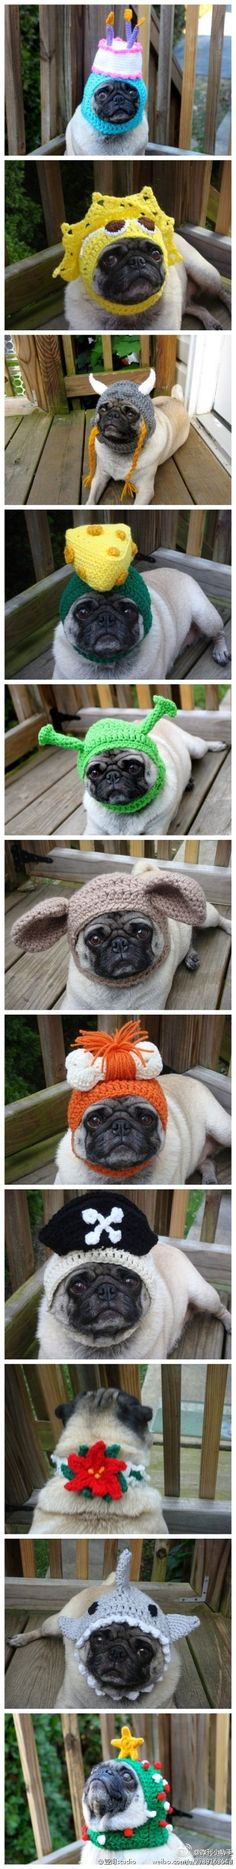 A pug of many hats